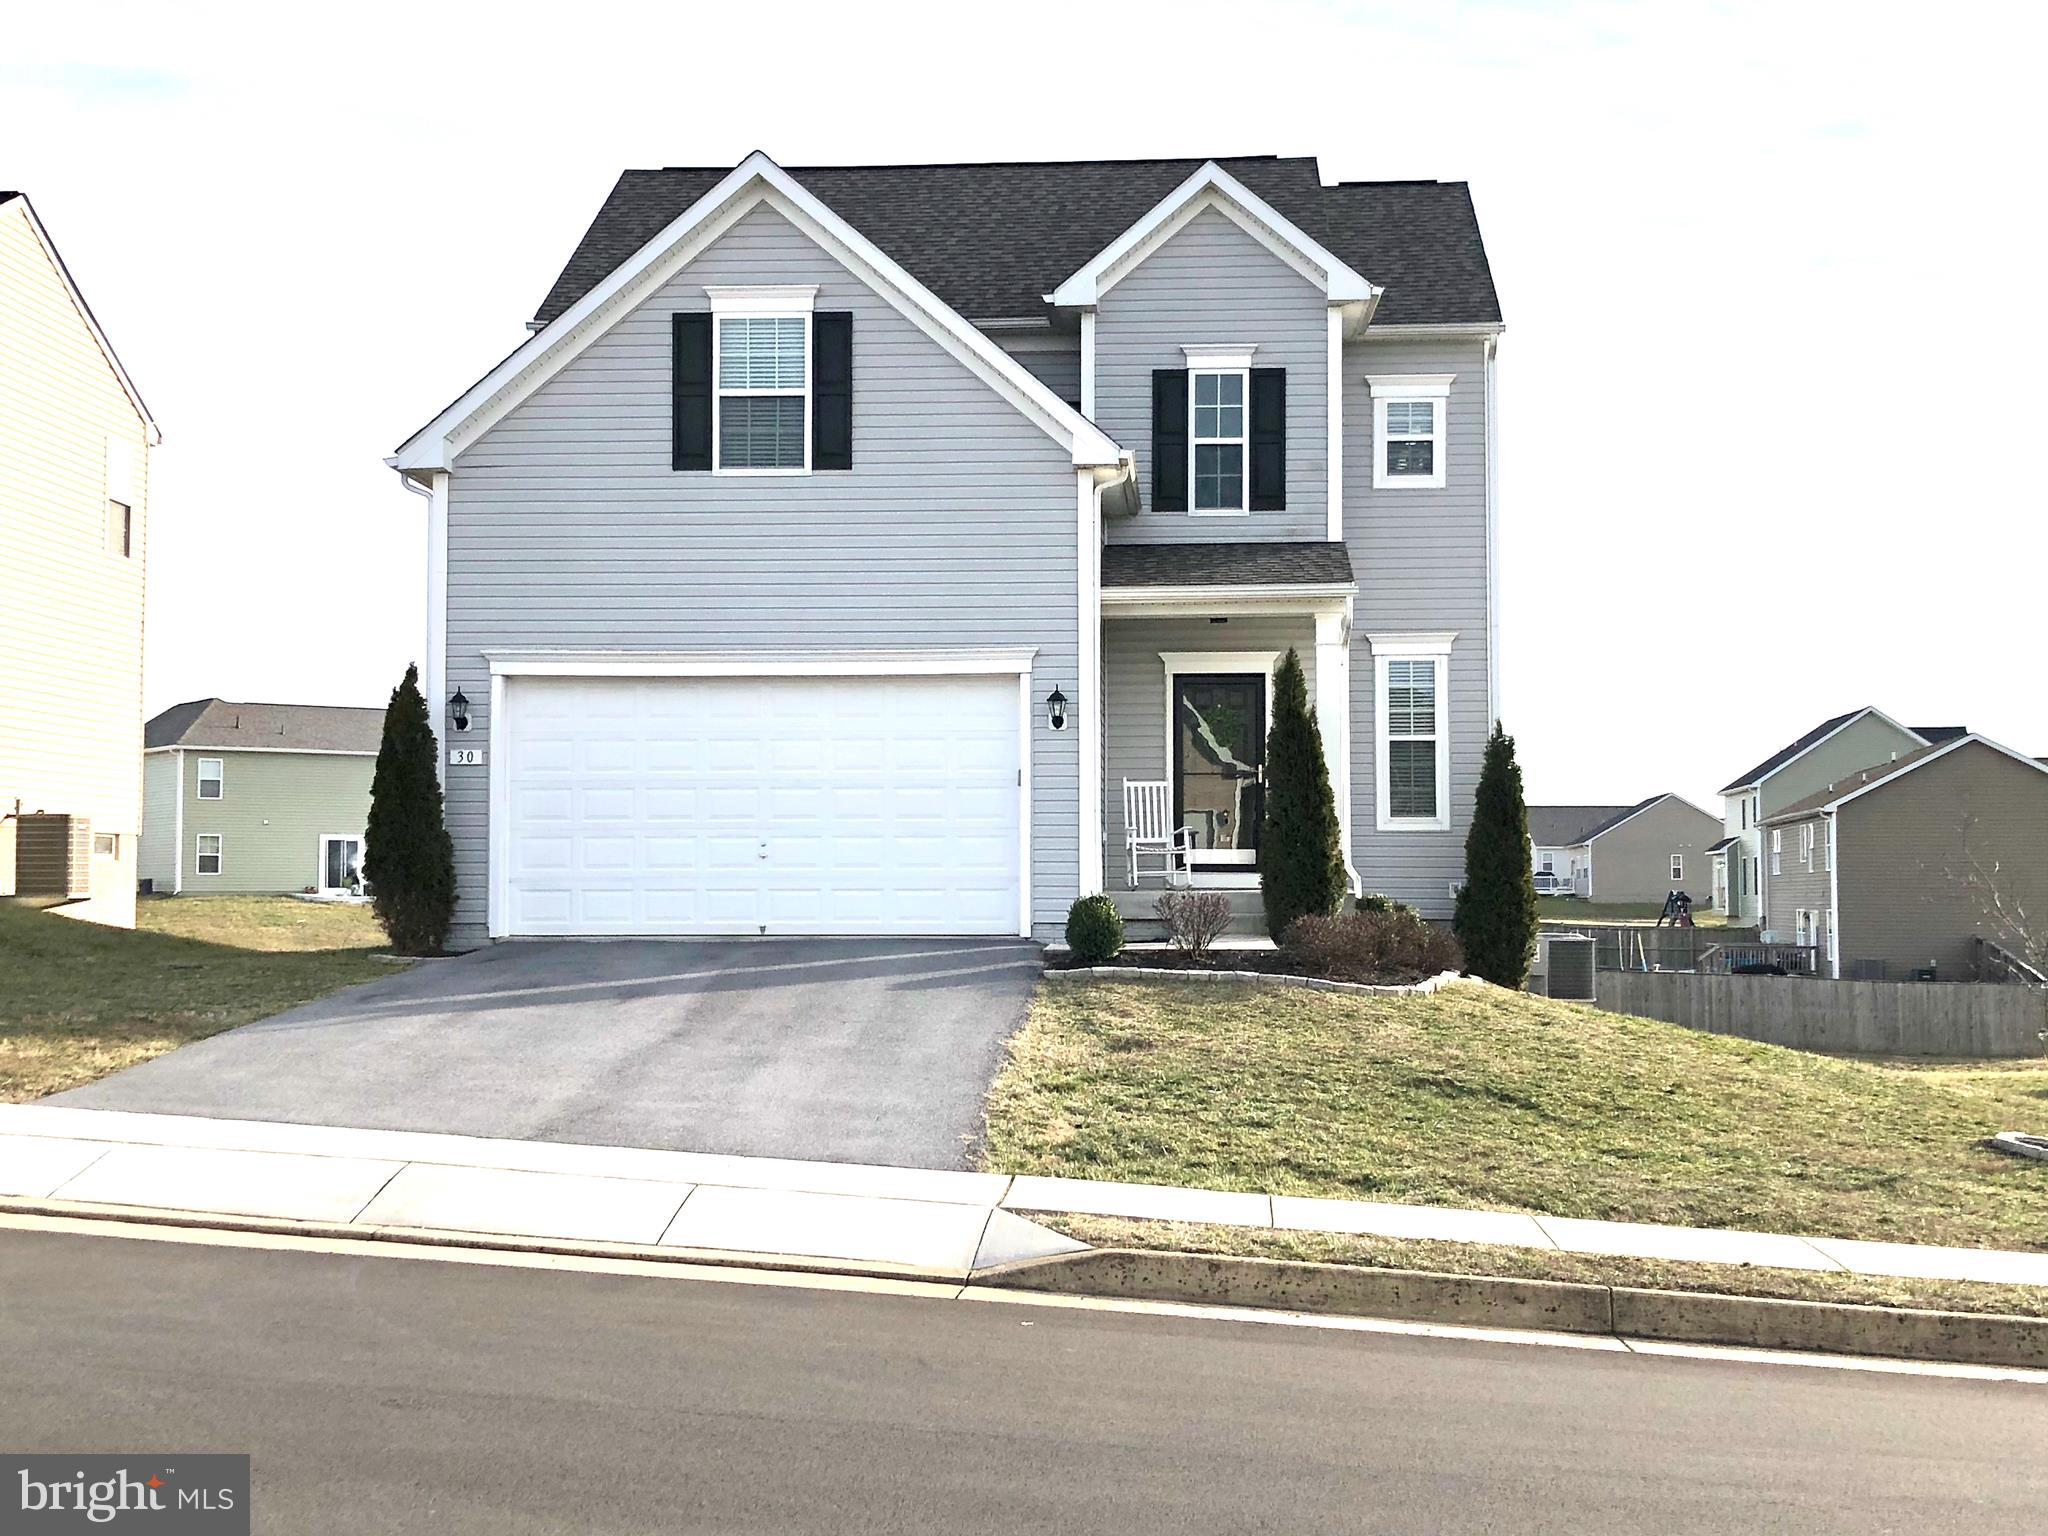 Welcome home to this hidden gem in Morning Dove Estates. Cute, covered front stoop to keep you and your guests dry from all the seasonal elements. Walk inside to be greeted by your hardwood foyer and spacious powder room. Open Family room and Kitchen concept with beautiful dark cabinets, kitchen island, and backsplash all conventiently located right off your large deck for summer BBQ's. Upstairs you will find 3 secondary bedrooms, upstairs laundry for added convenience, and a nice Owner's suite with walk-in closet, dual vanity sinks, linen closet and 5ft stand up shower! Extra space needed? No problem! The unfinished basement gives you plenty of storage opportunities or room to grow by finishing it off! You can even add an extra full bathroom if needed. Nice backyard for all to enjoy and a large storage shed included. This entire home has been VERY well cared for.  Schedule your private tour today!